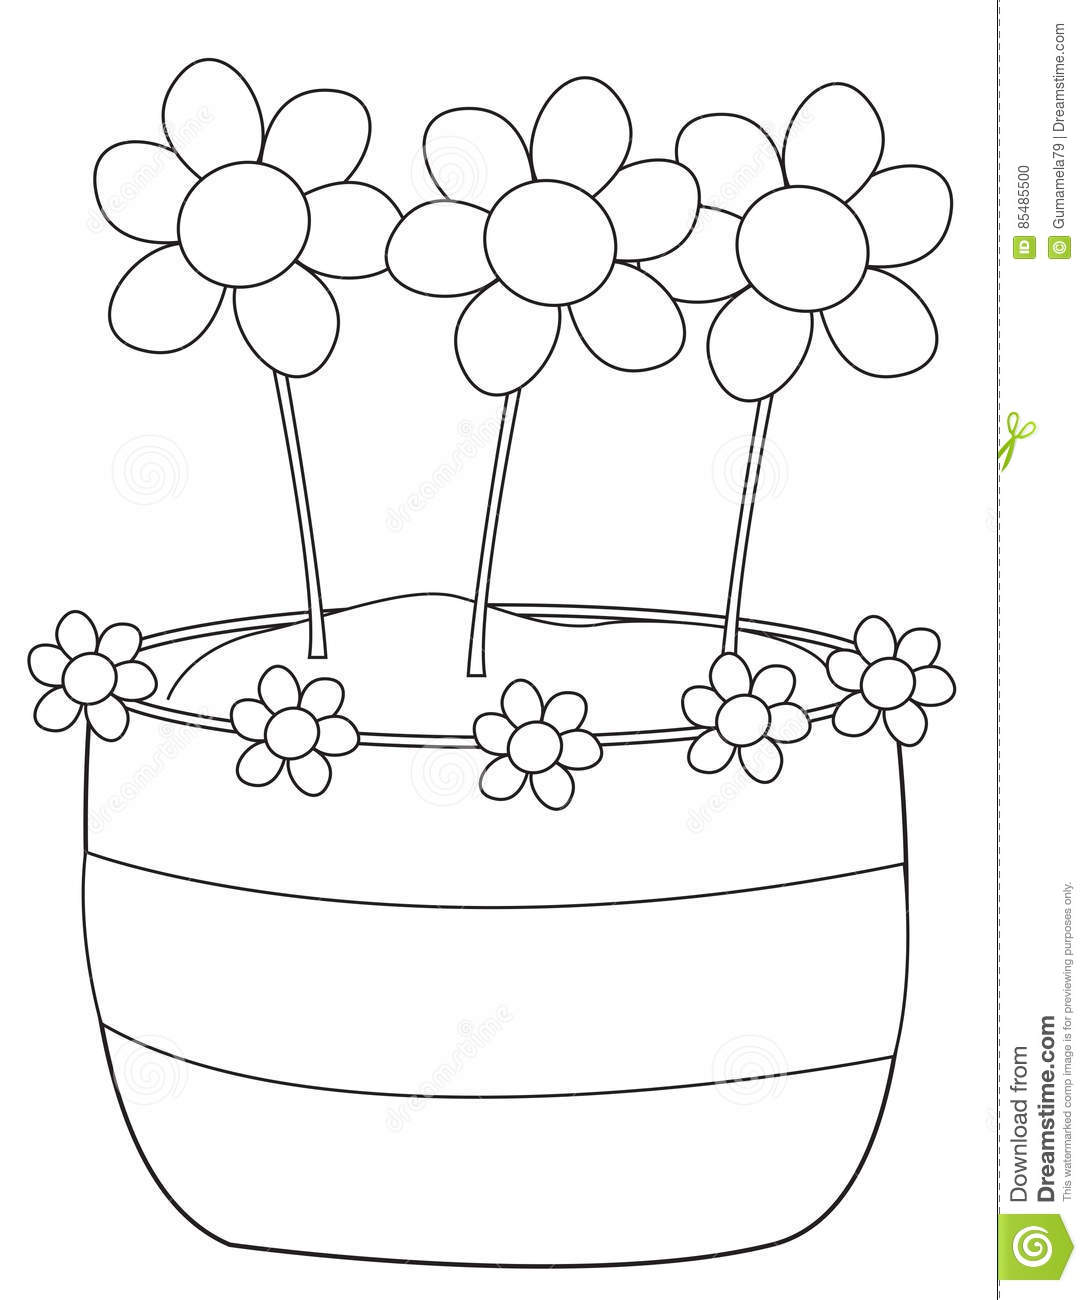 beautiful tall flower centerpieces, beautiful flowers in vases on tables, beautiful vase of flowers with white background, flower cross-hatching drawing, rose flower drawing, beautiful plants for the home, beautiful roses in a vase, red realistic rose drawing, on beautiful flower vase drawing